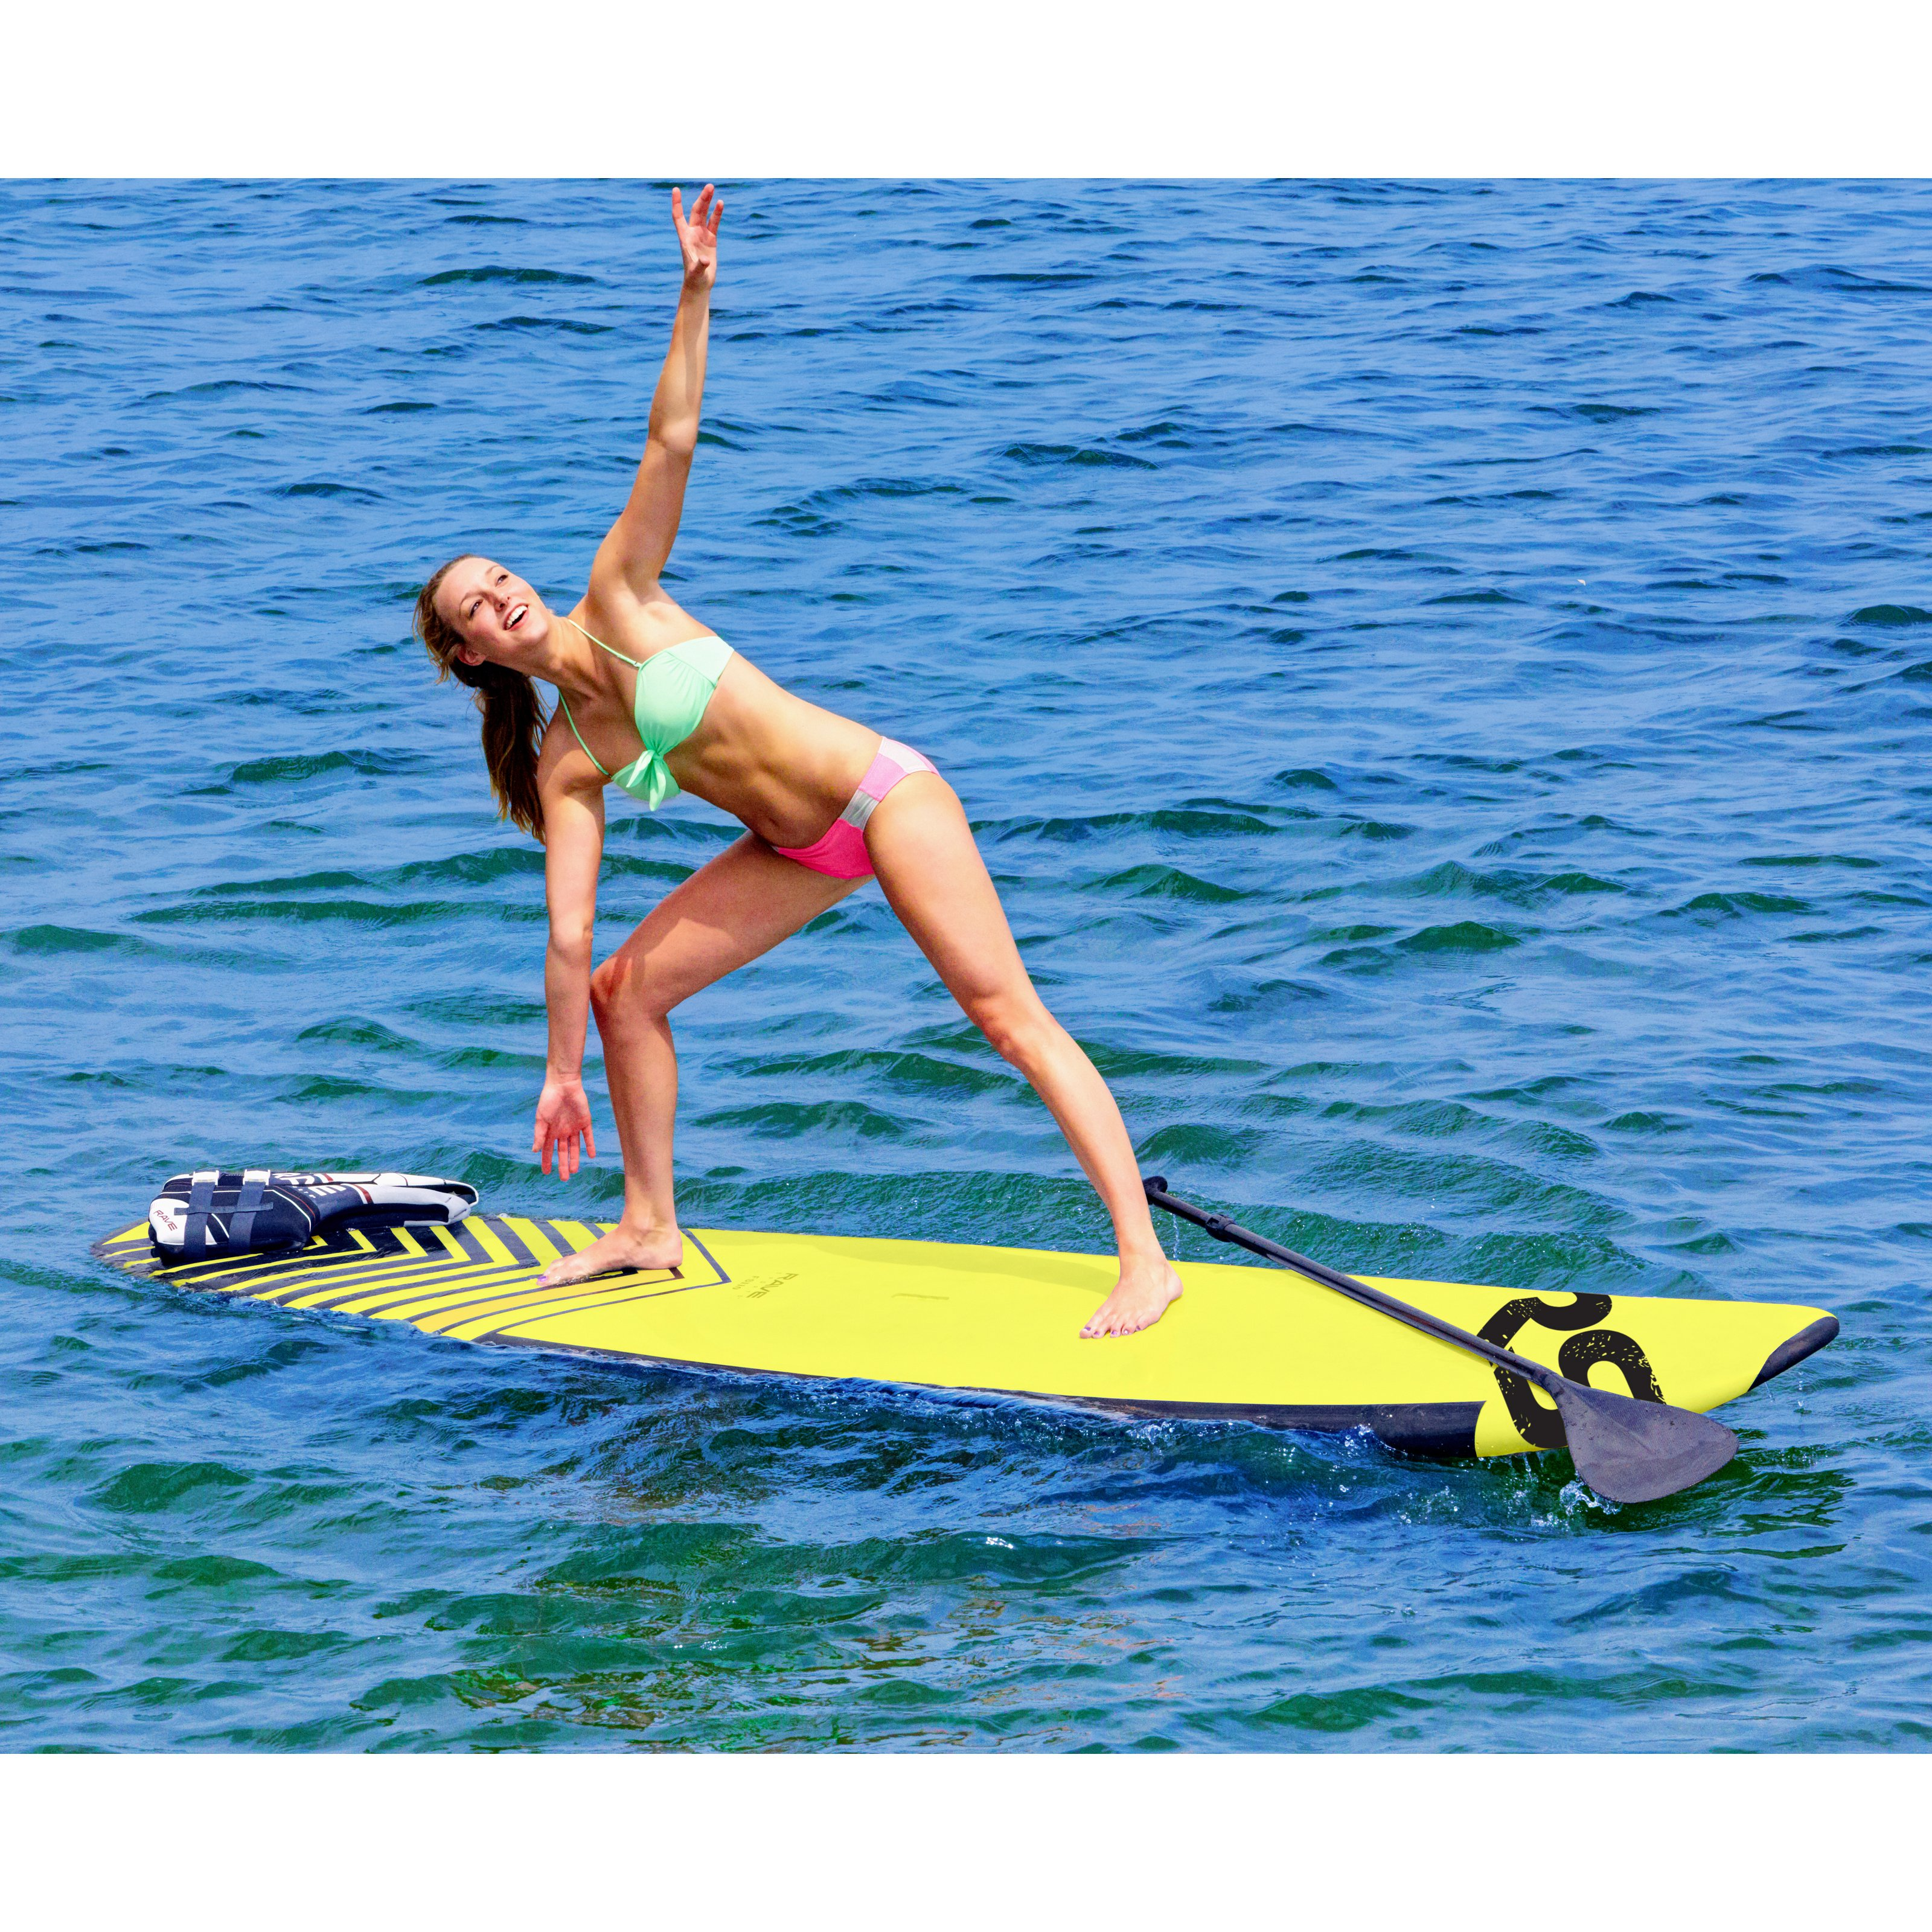 Rave Sports Soft Top SUP FS110 Stand Up Paddle Board by Rave Sports